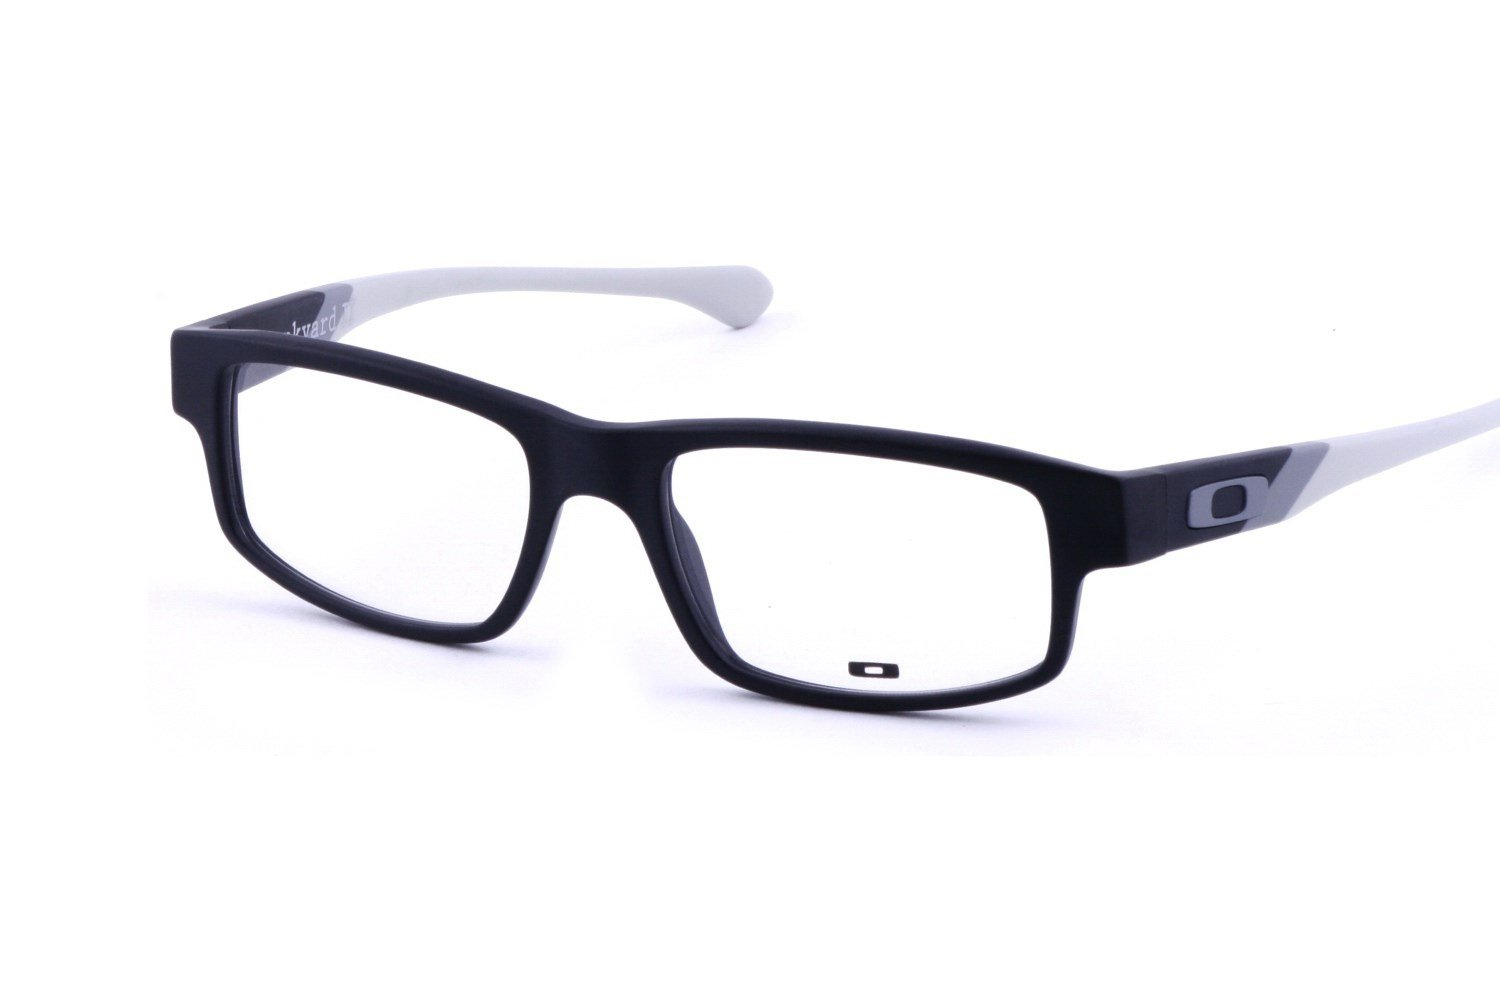 Glasses Frame Website : Oakley Junkyard II (53) Prescription Eyeglasses ...